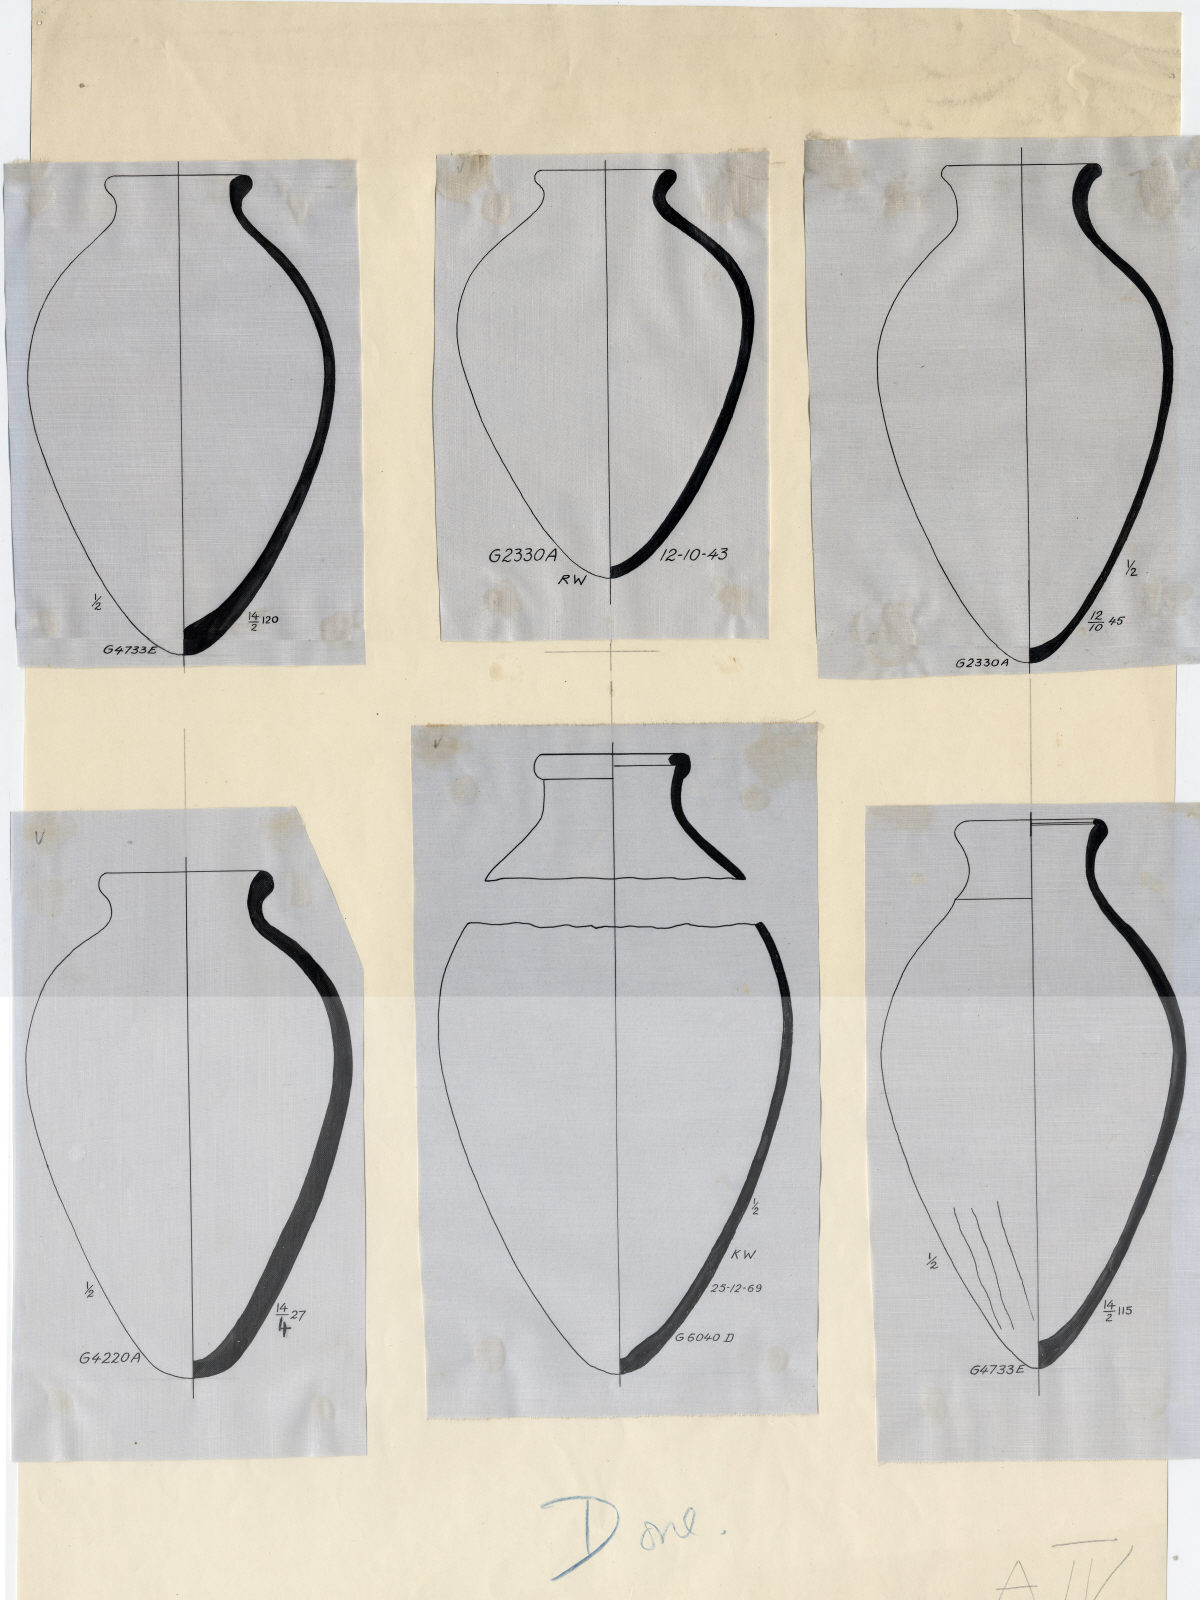 Drawings: Pottery jars from G 4220, G 4733, G 5380, G 6040